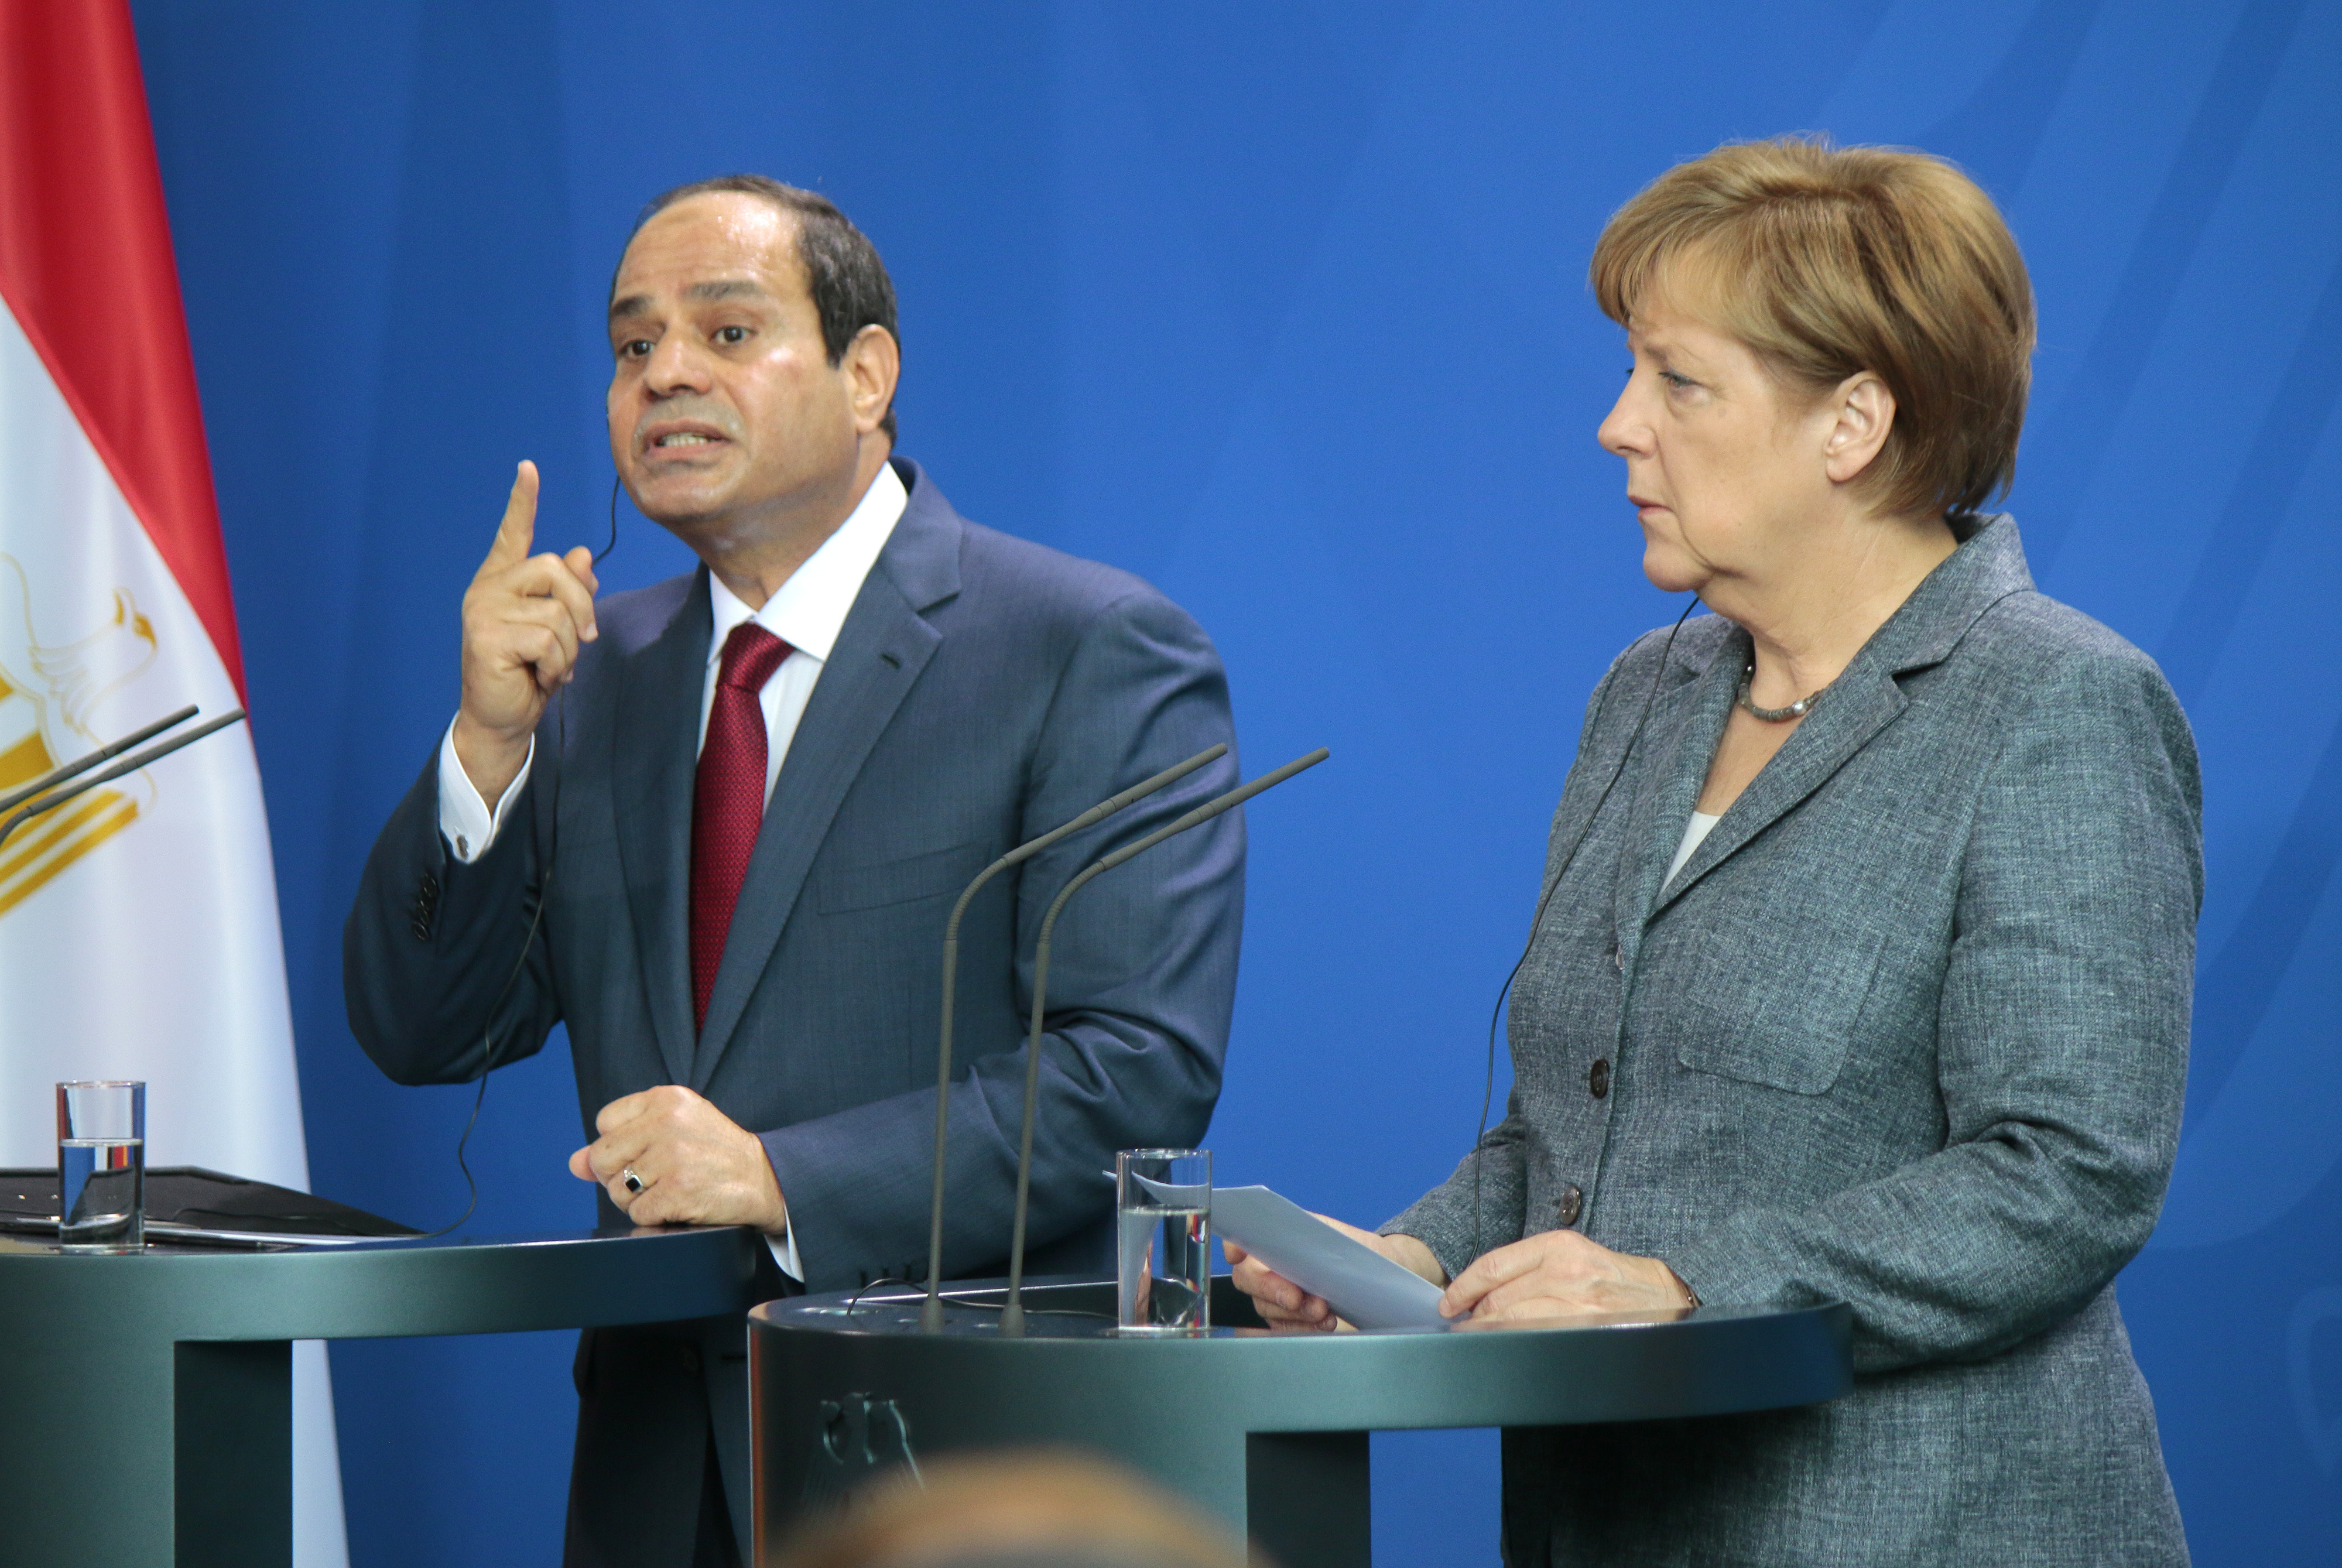 Egyptian president Abd al-Fattah al-Sisi together with the Chancellor of Germany, Angela Merkel.